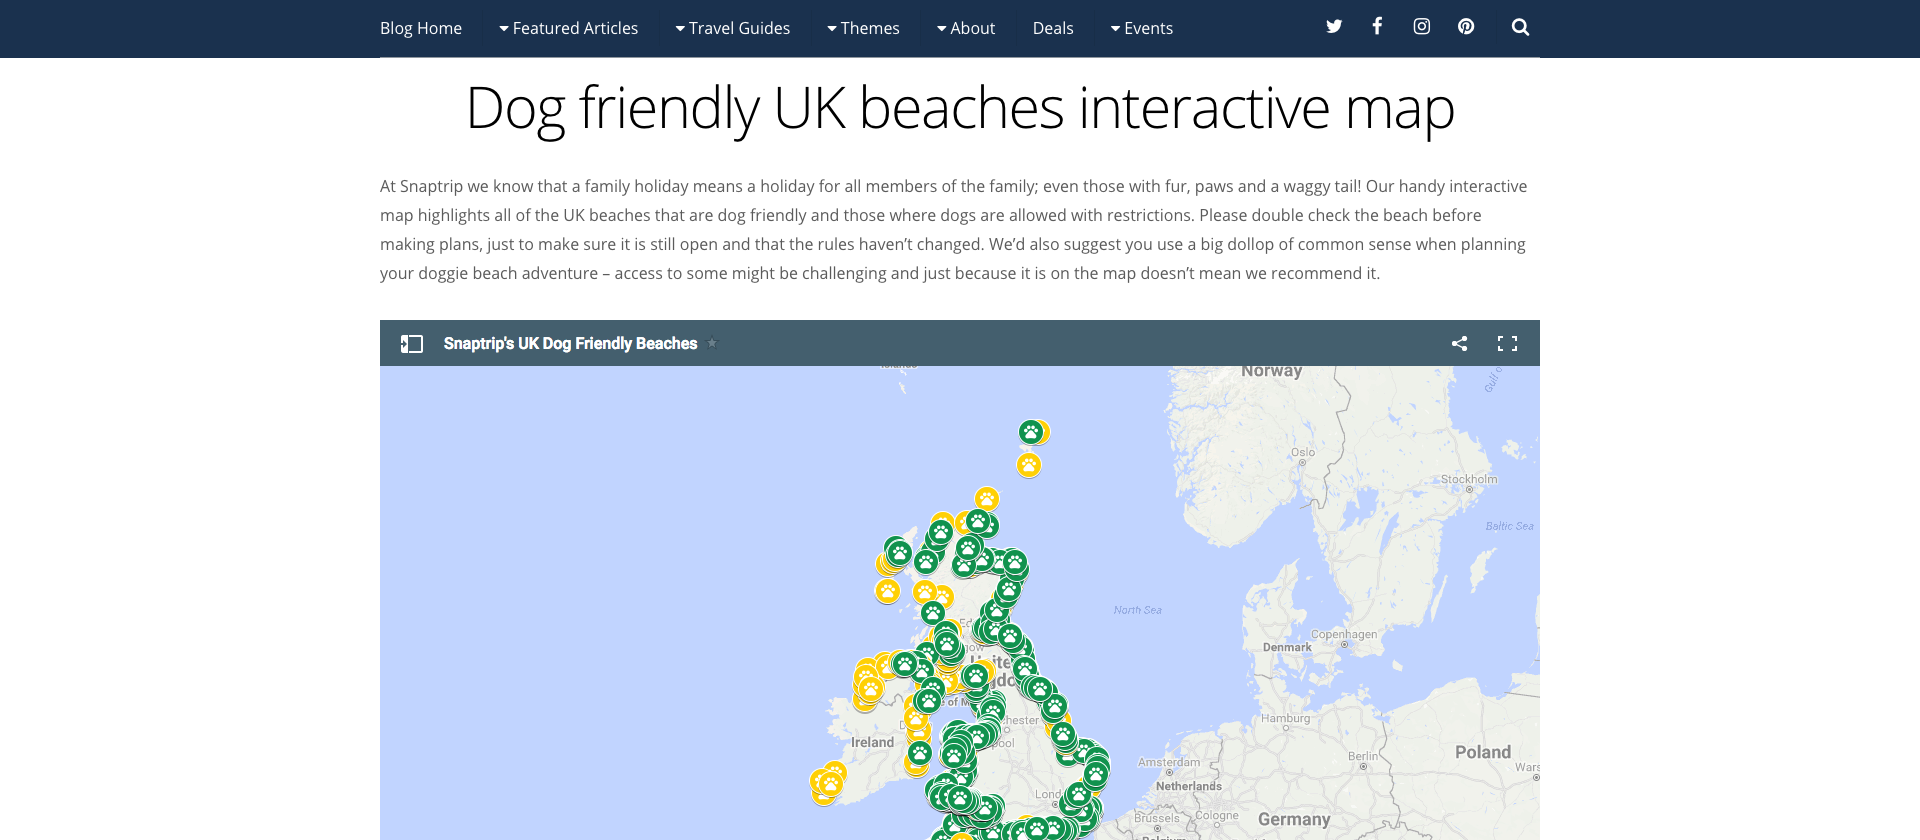 Dog friendly UK beaches interactive map Snaptrip